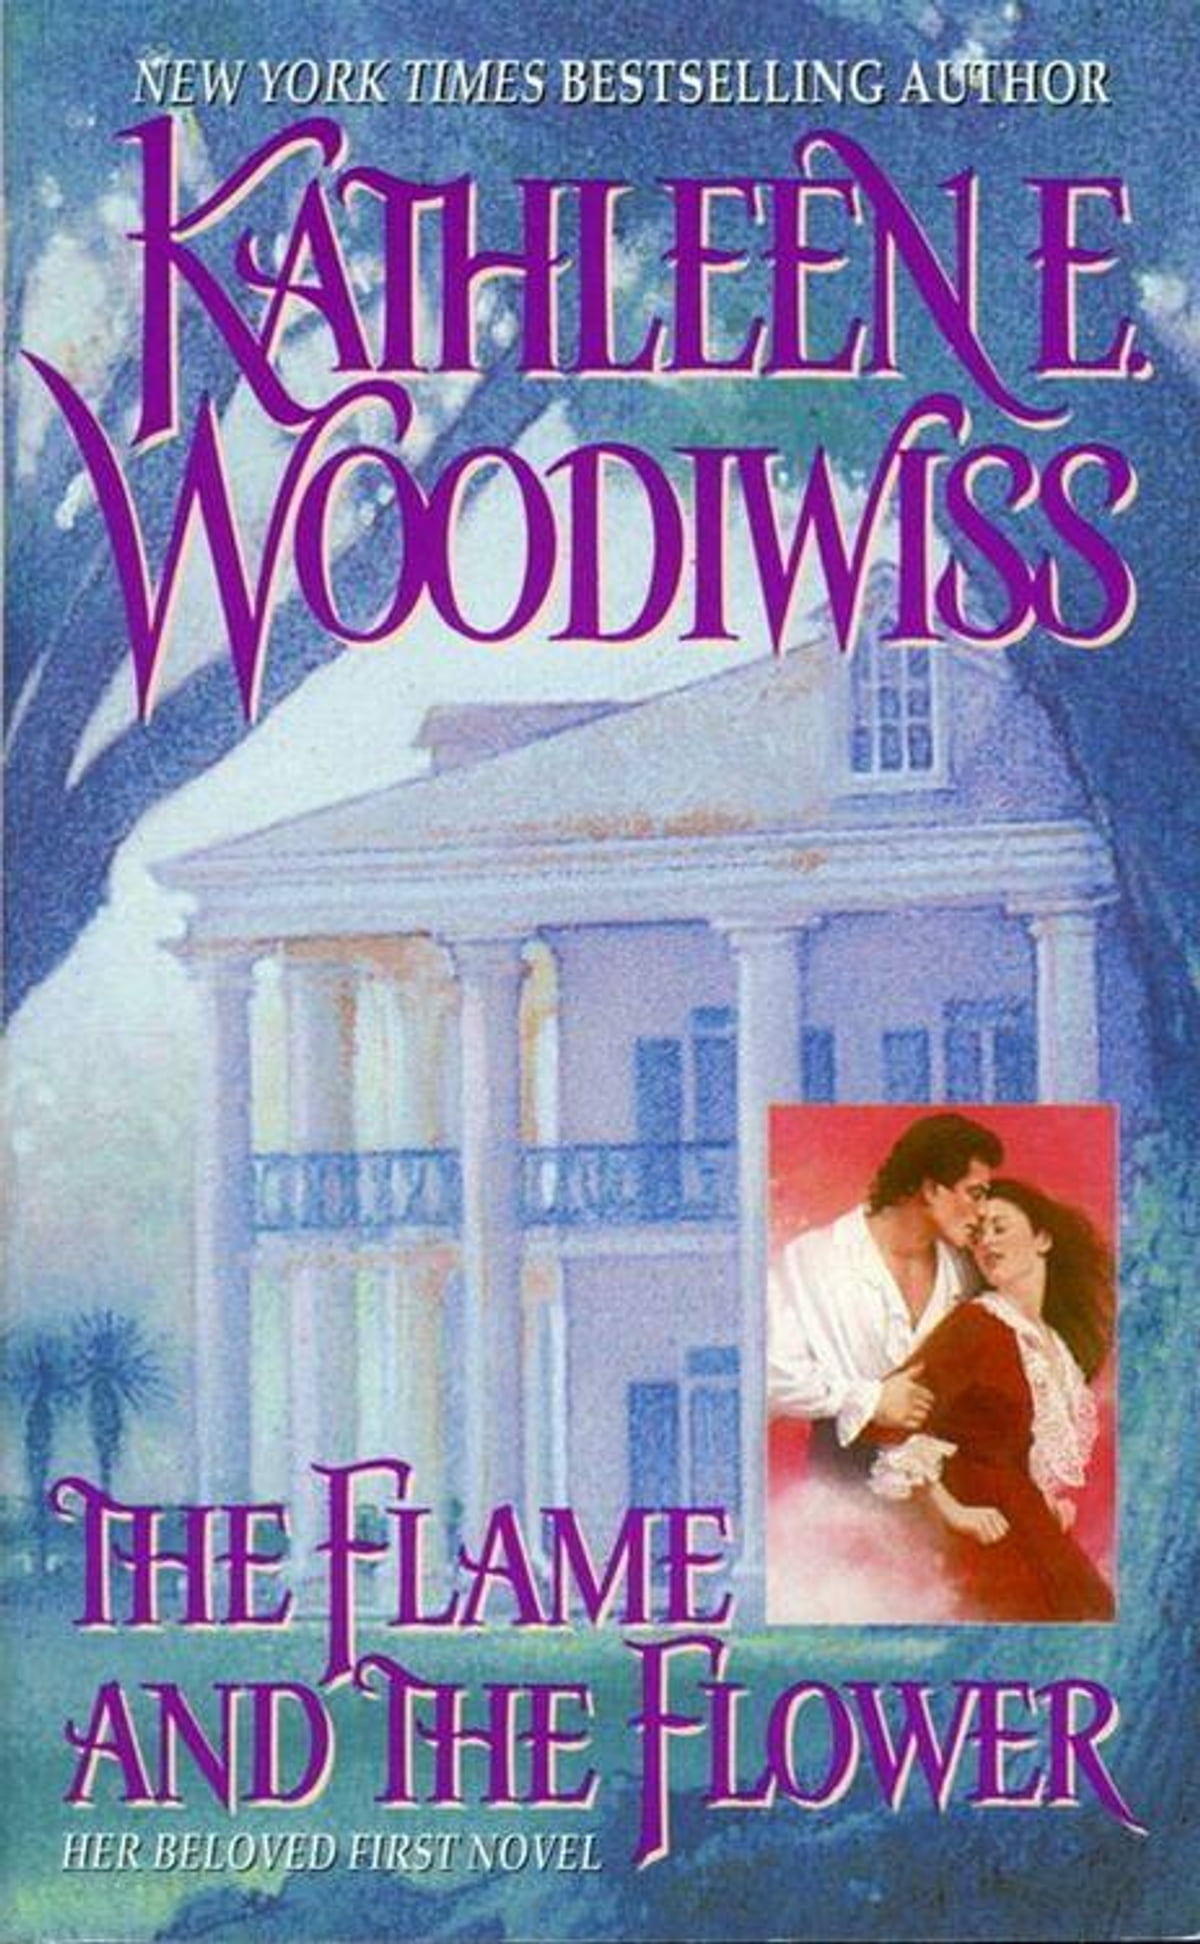 The flame and the flower ebook by kathleen woodiwiss the flame and the flower ebook by kathleen woodiwiss 9780061743696 rakuten kobo fandeluxe Document